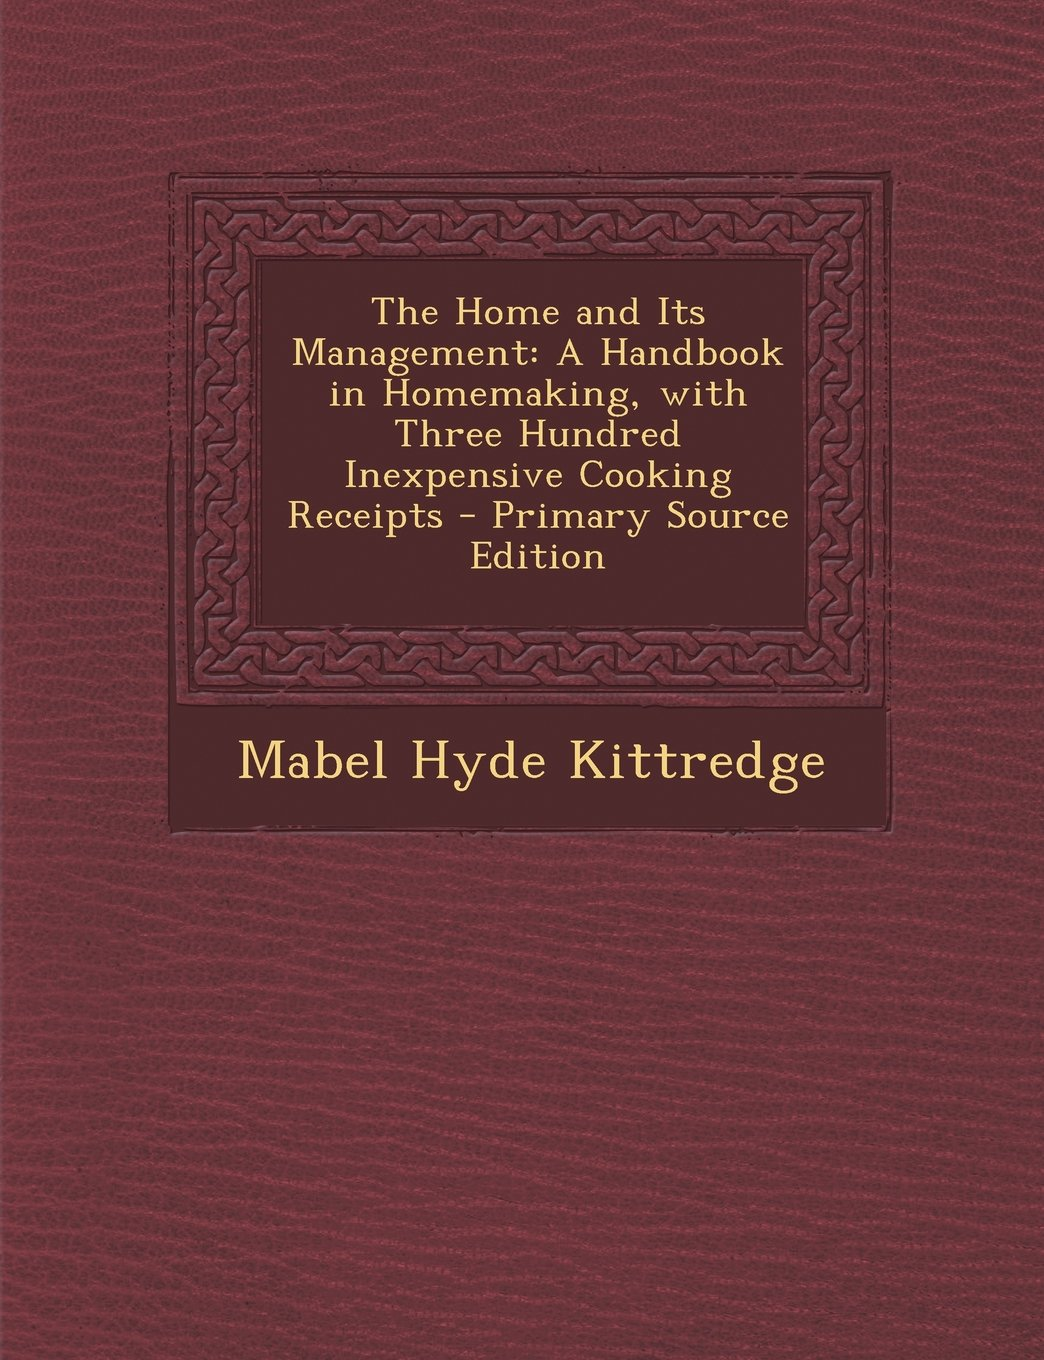 Download The Home and Its Management: A Handbook in Homemaking, with Three Hundred Inexpensive Cooking Receipts - Primary Source Edition pdf